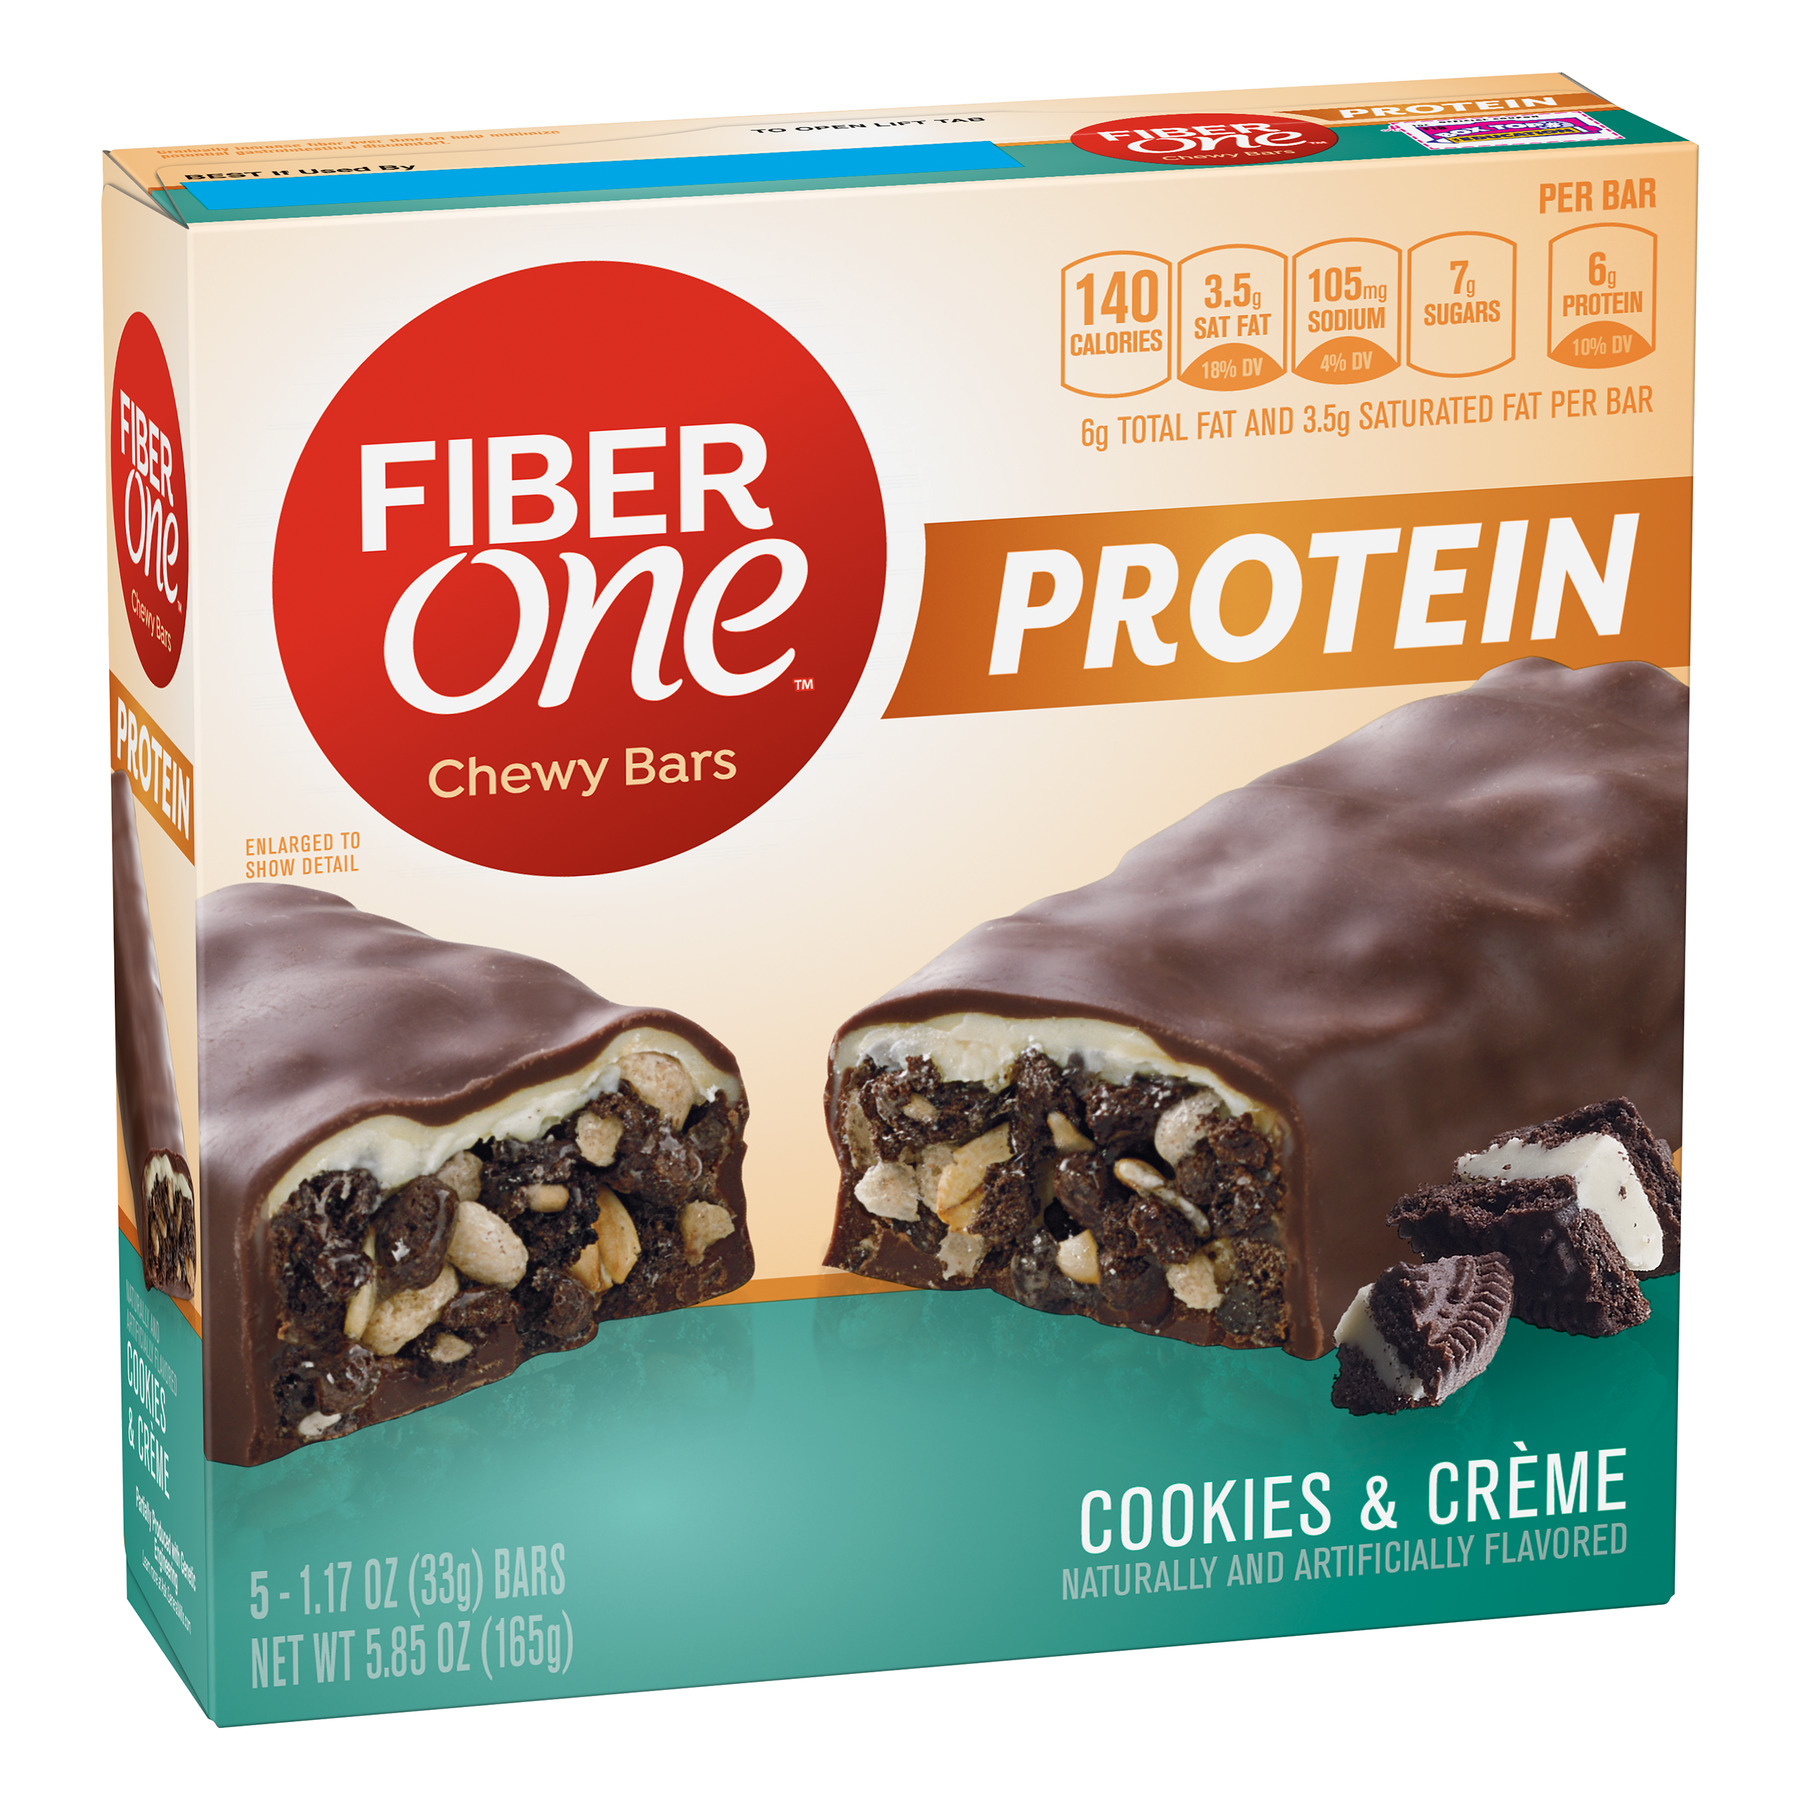 This is an image of Lively Fiber One Bar Ingredient Label